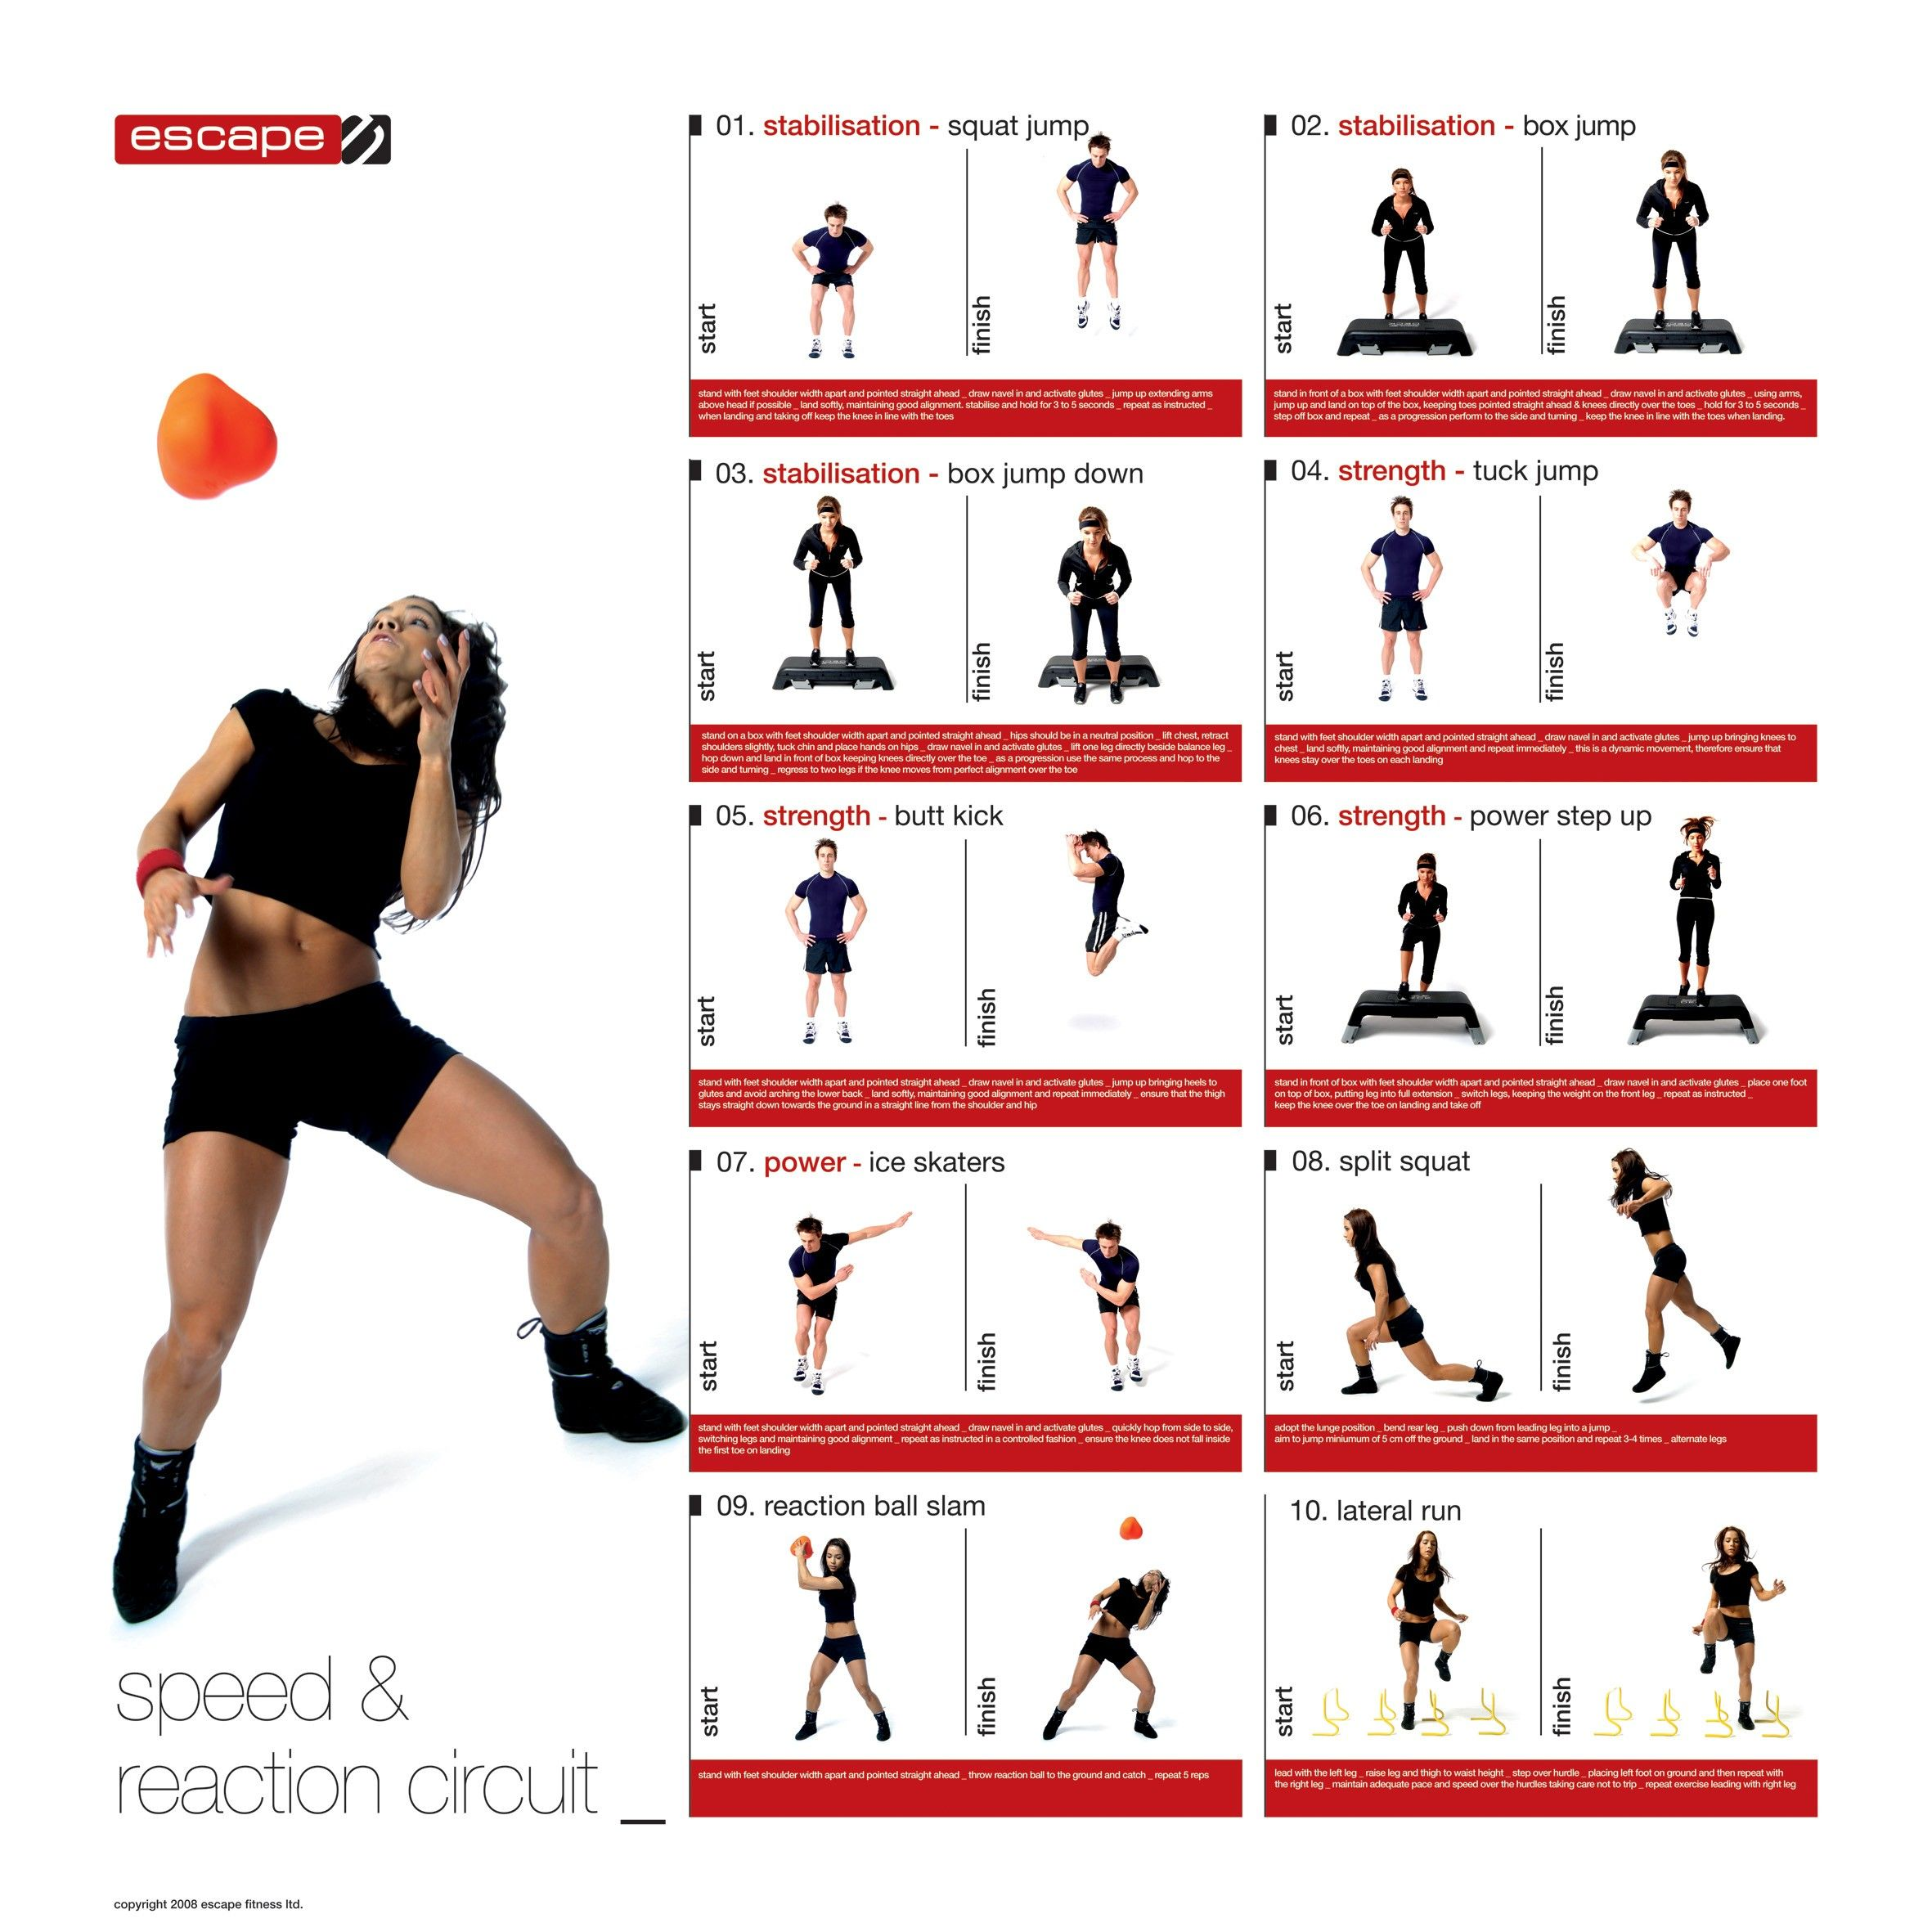 Circuit Training Combining Cardiovacular Work With Weight: Cardio Exercise Images - Google Search